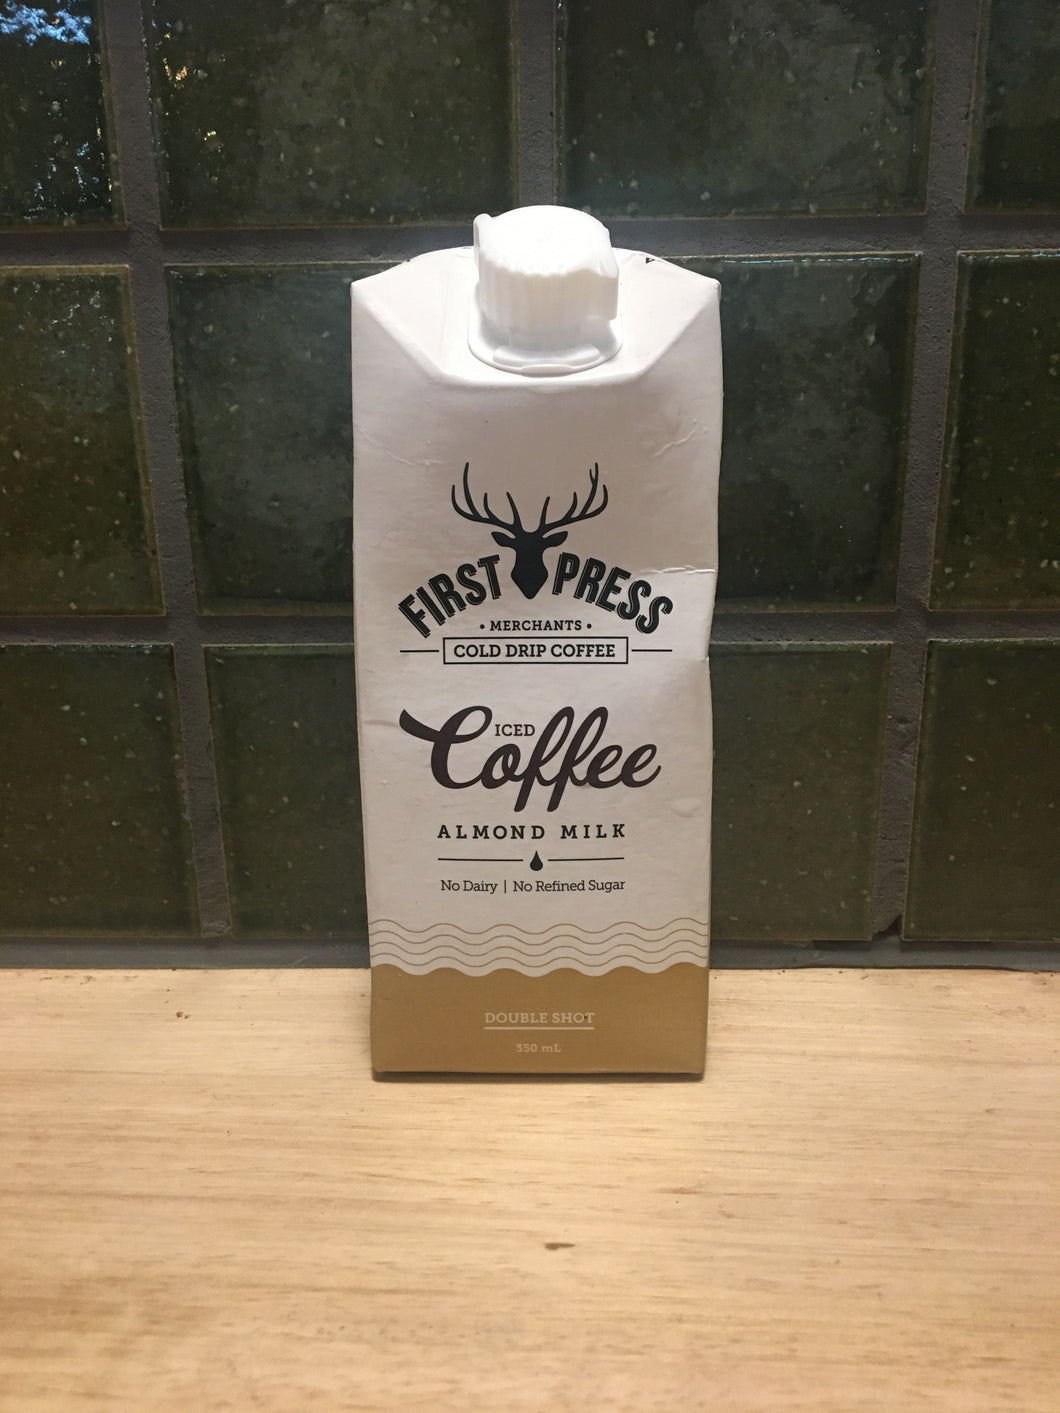 First Press Iced Coffee Almond Milk 350mL